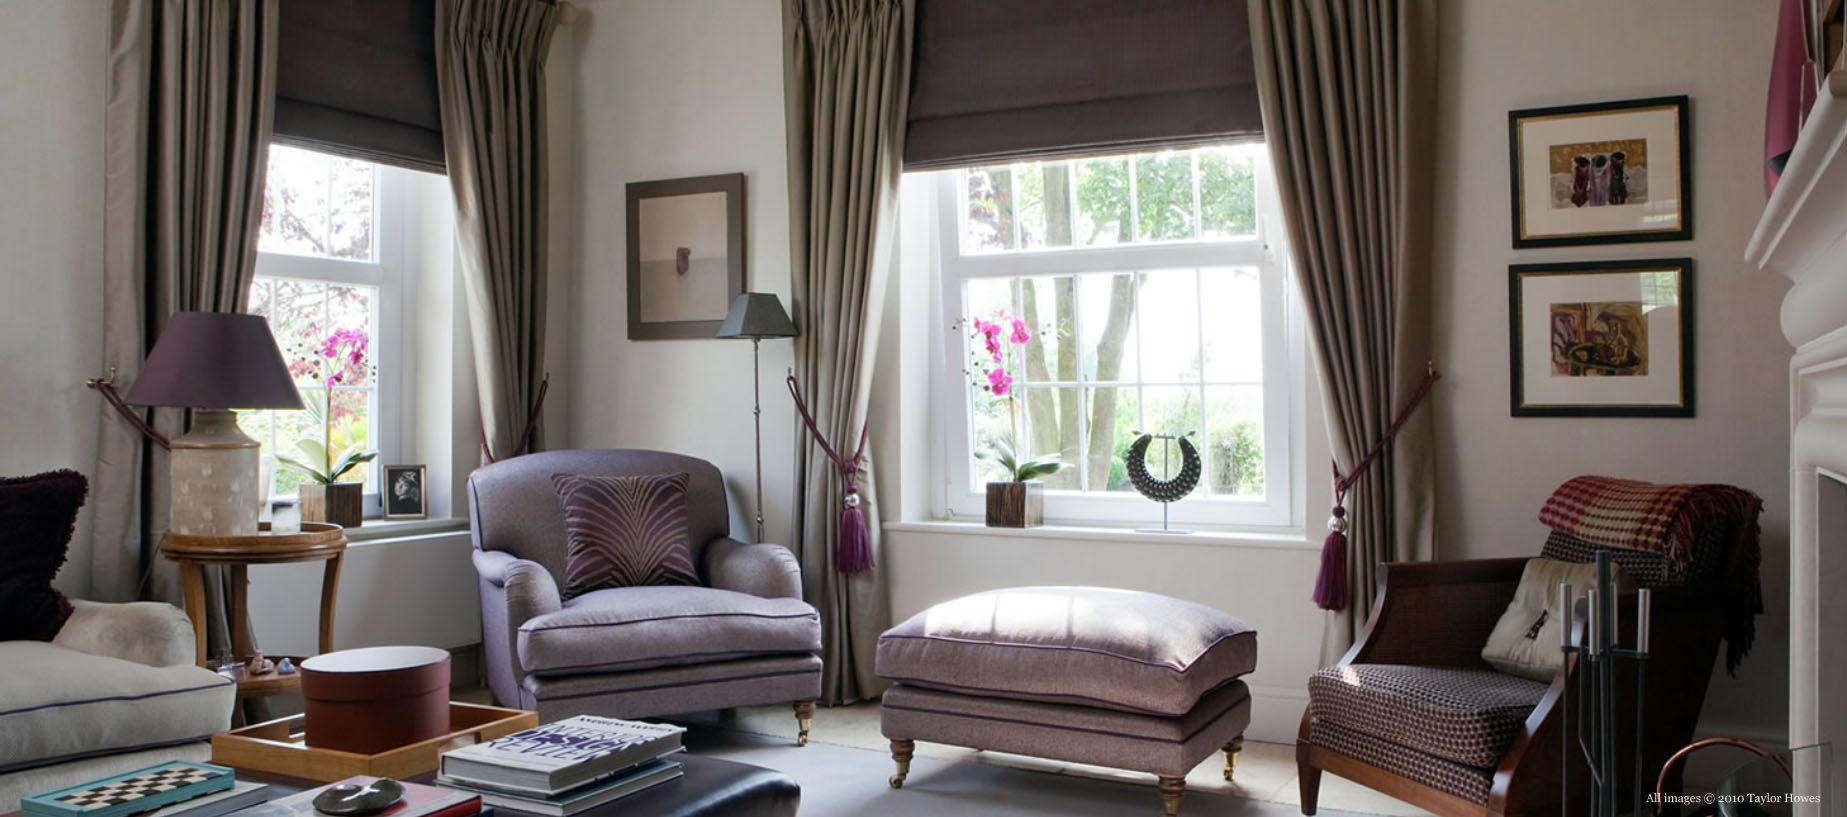 Home taylor interiors - Country House Design London Interior Design Team Gail Taylor